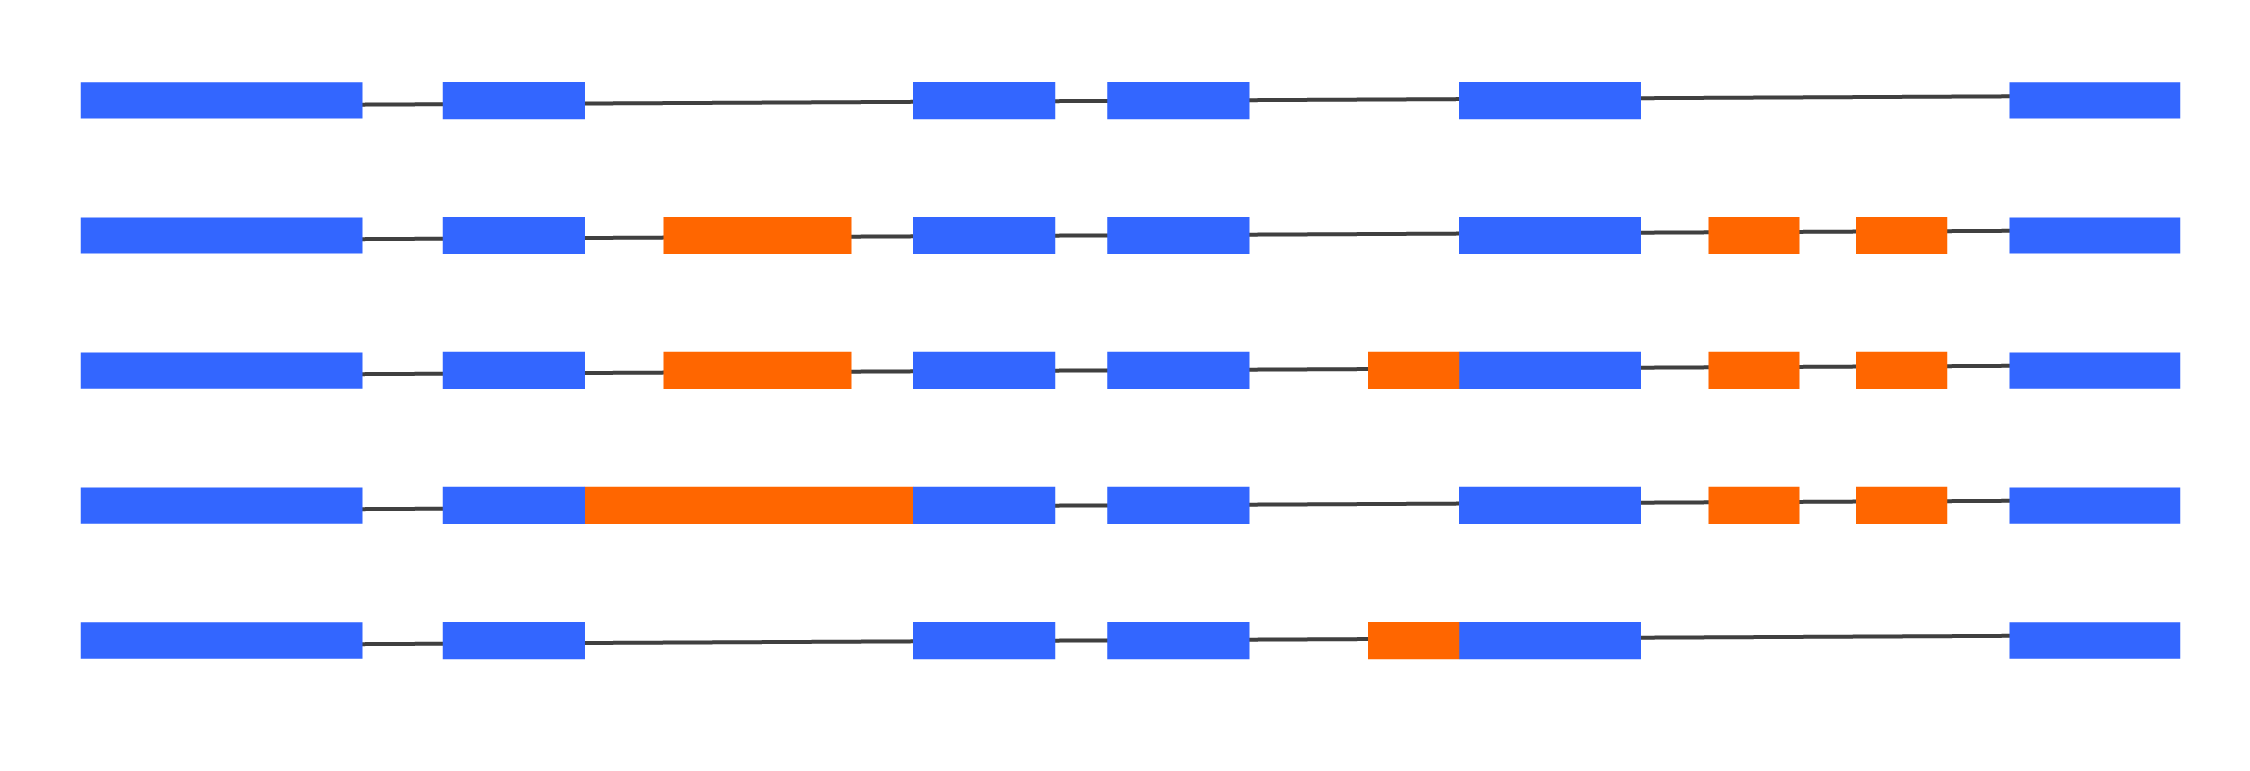 Figure 3 - Many transcript isoforms can exist per gene. Many events may appear to be co-spliced with distant events. When using standard short read data, it is impossible to know if these events are really co-regulated or if they just appear that way in the annotation, because a single short read cannot link the two together.